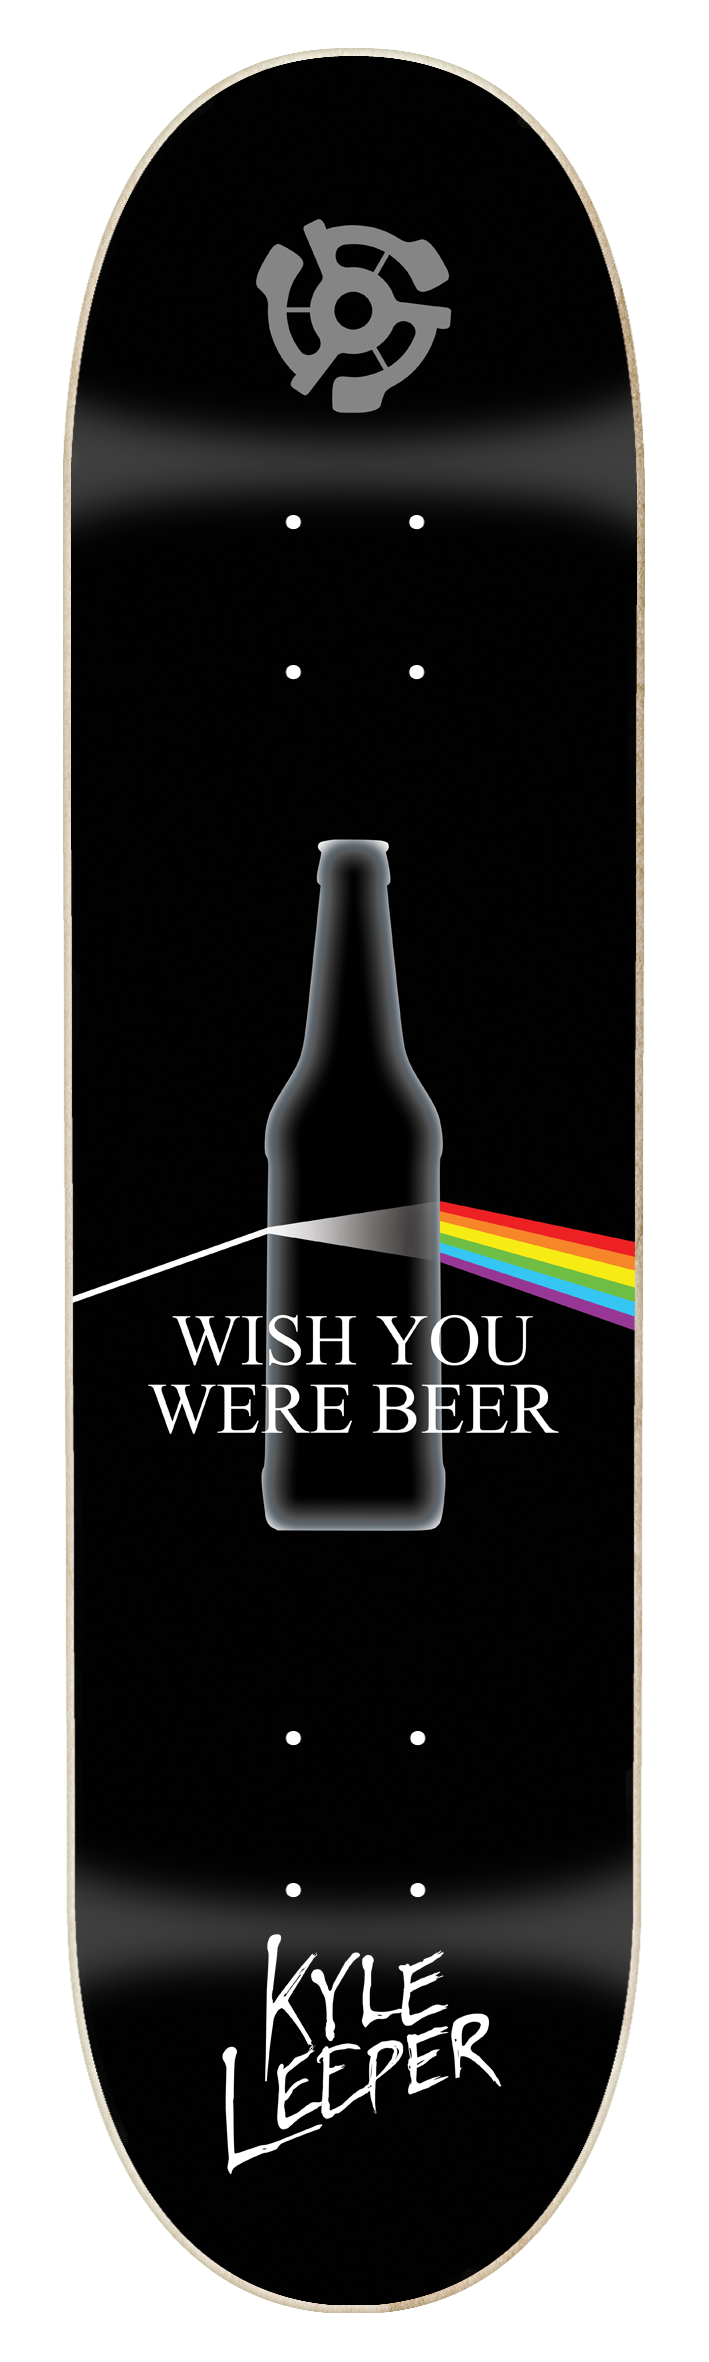 wish-you-were-beer-mockup.png